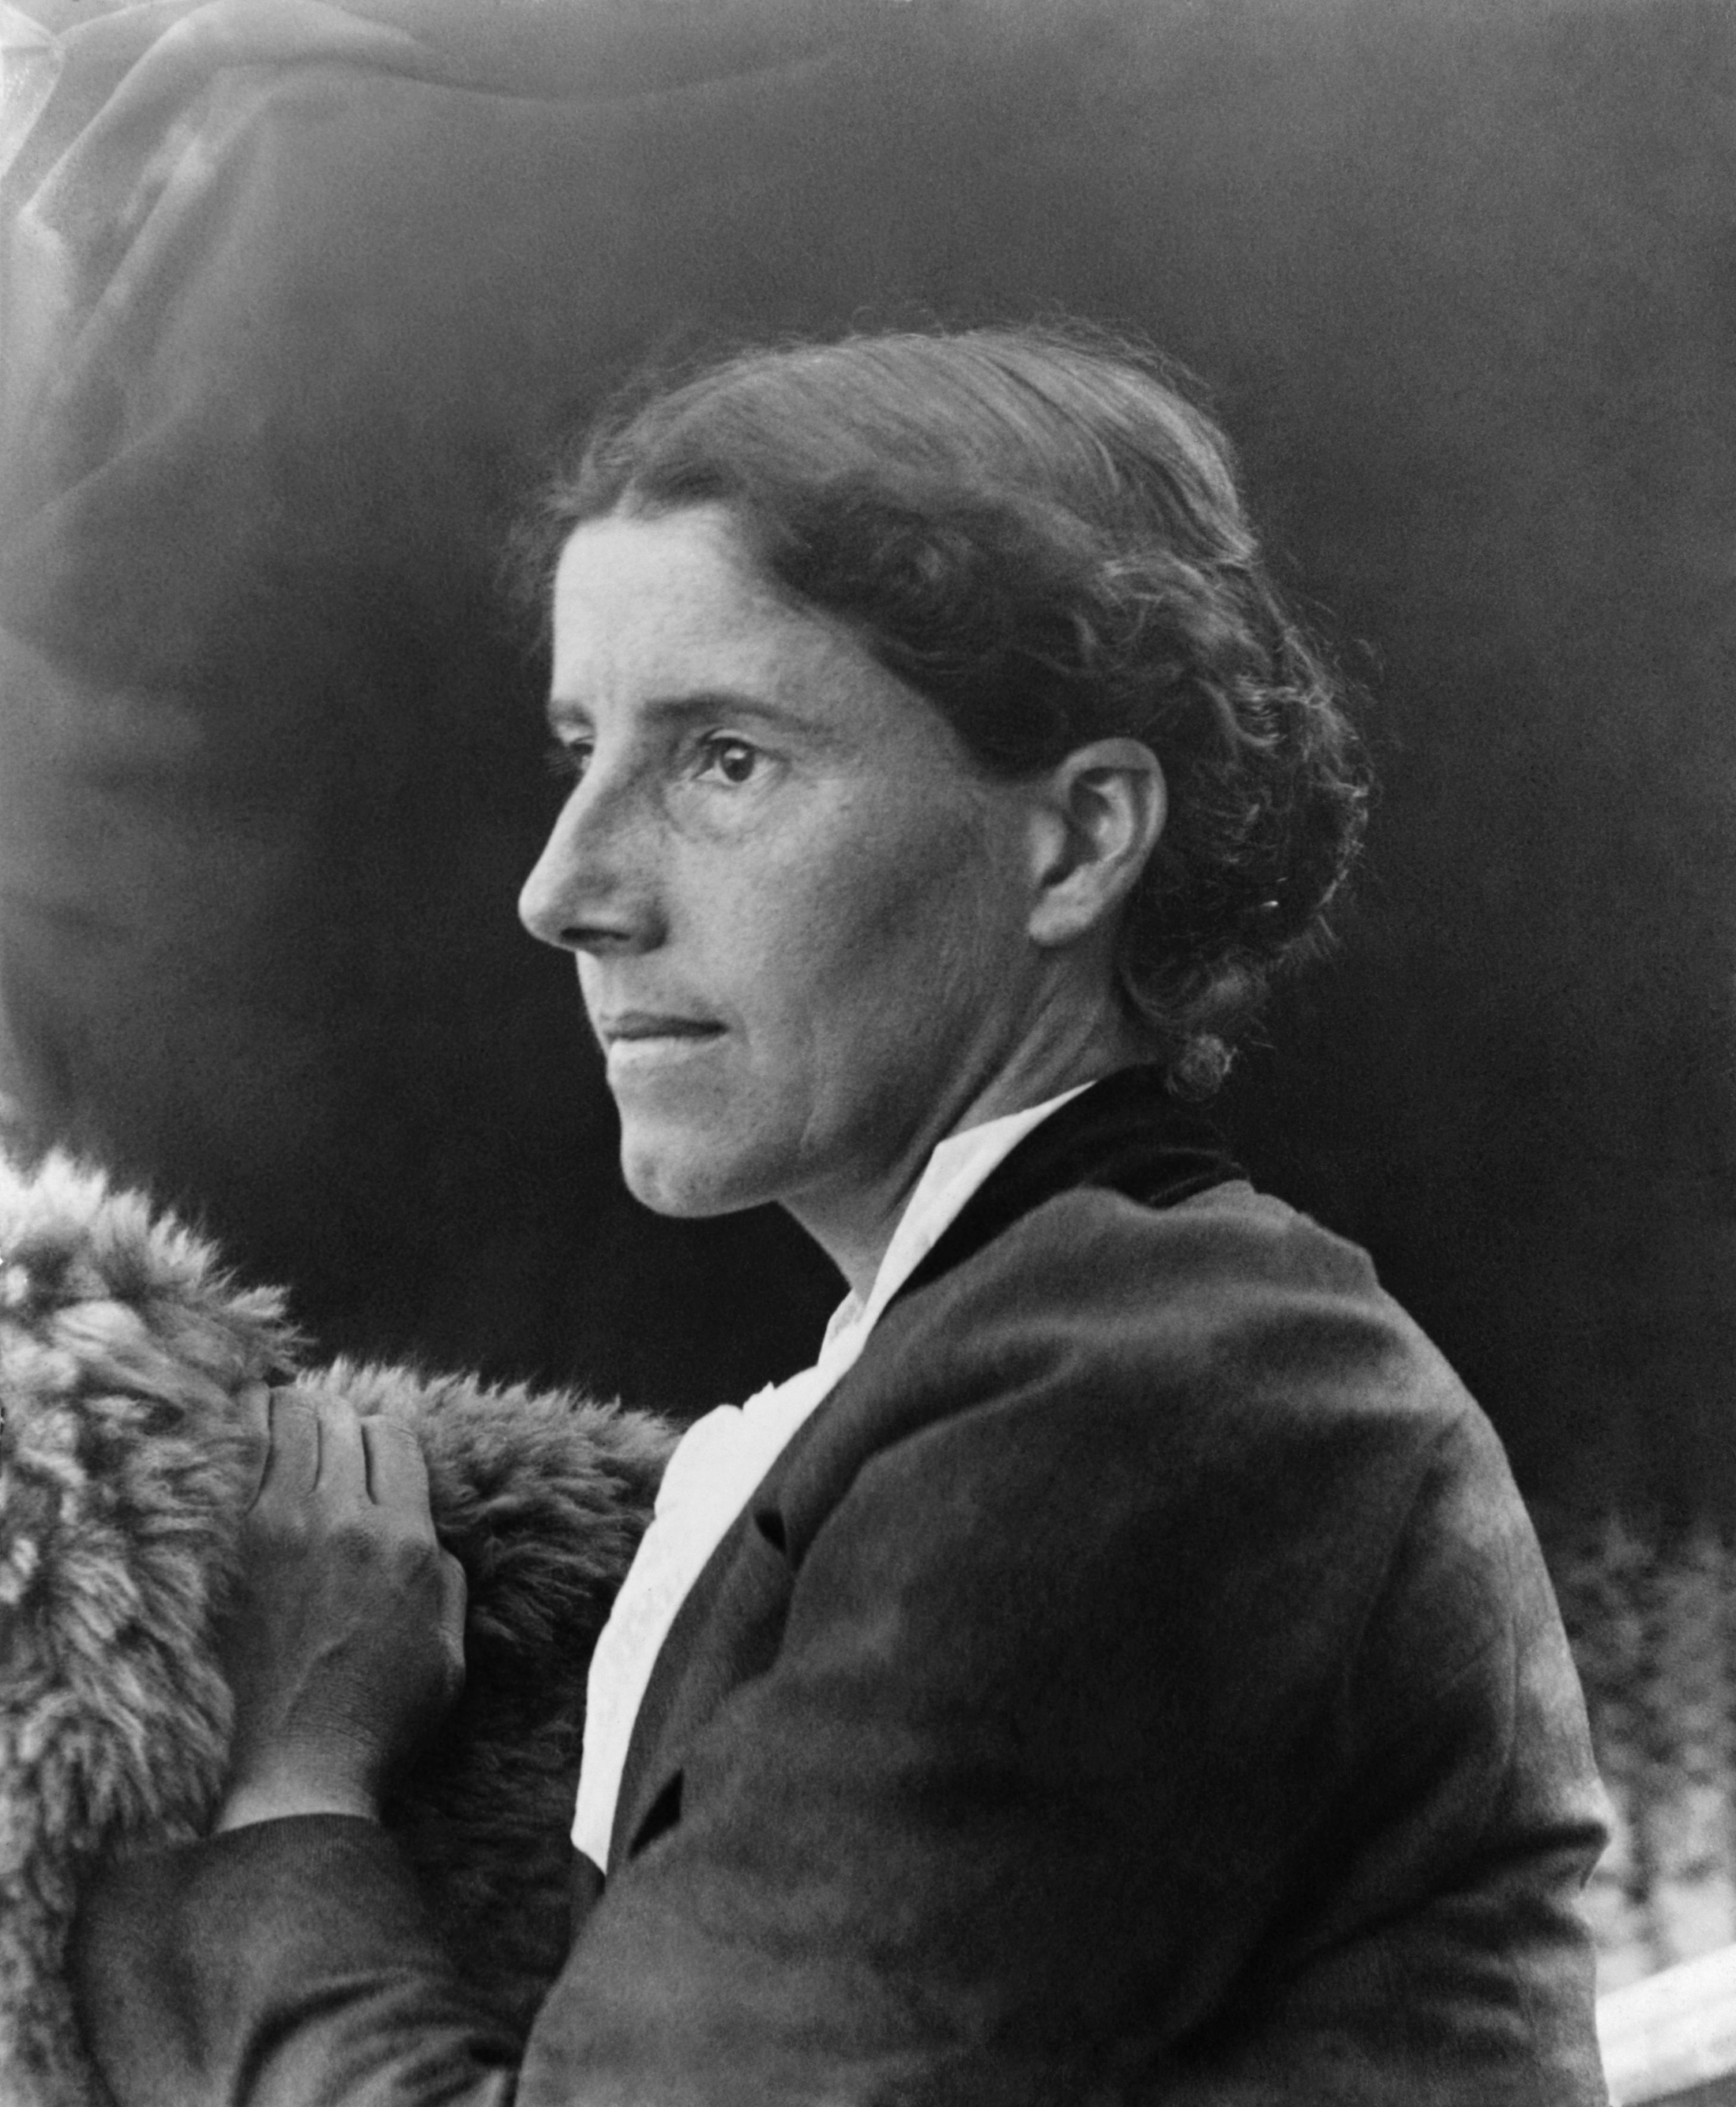 Best Quotes From The Yellow Wallpaper: Charlotte Perkins Gilman's The Yellow Wallpaper Quotes